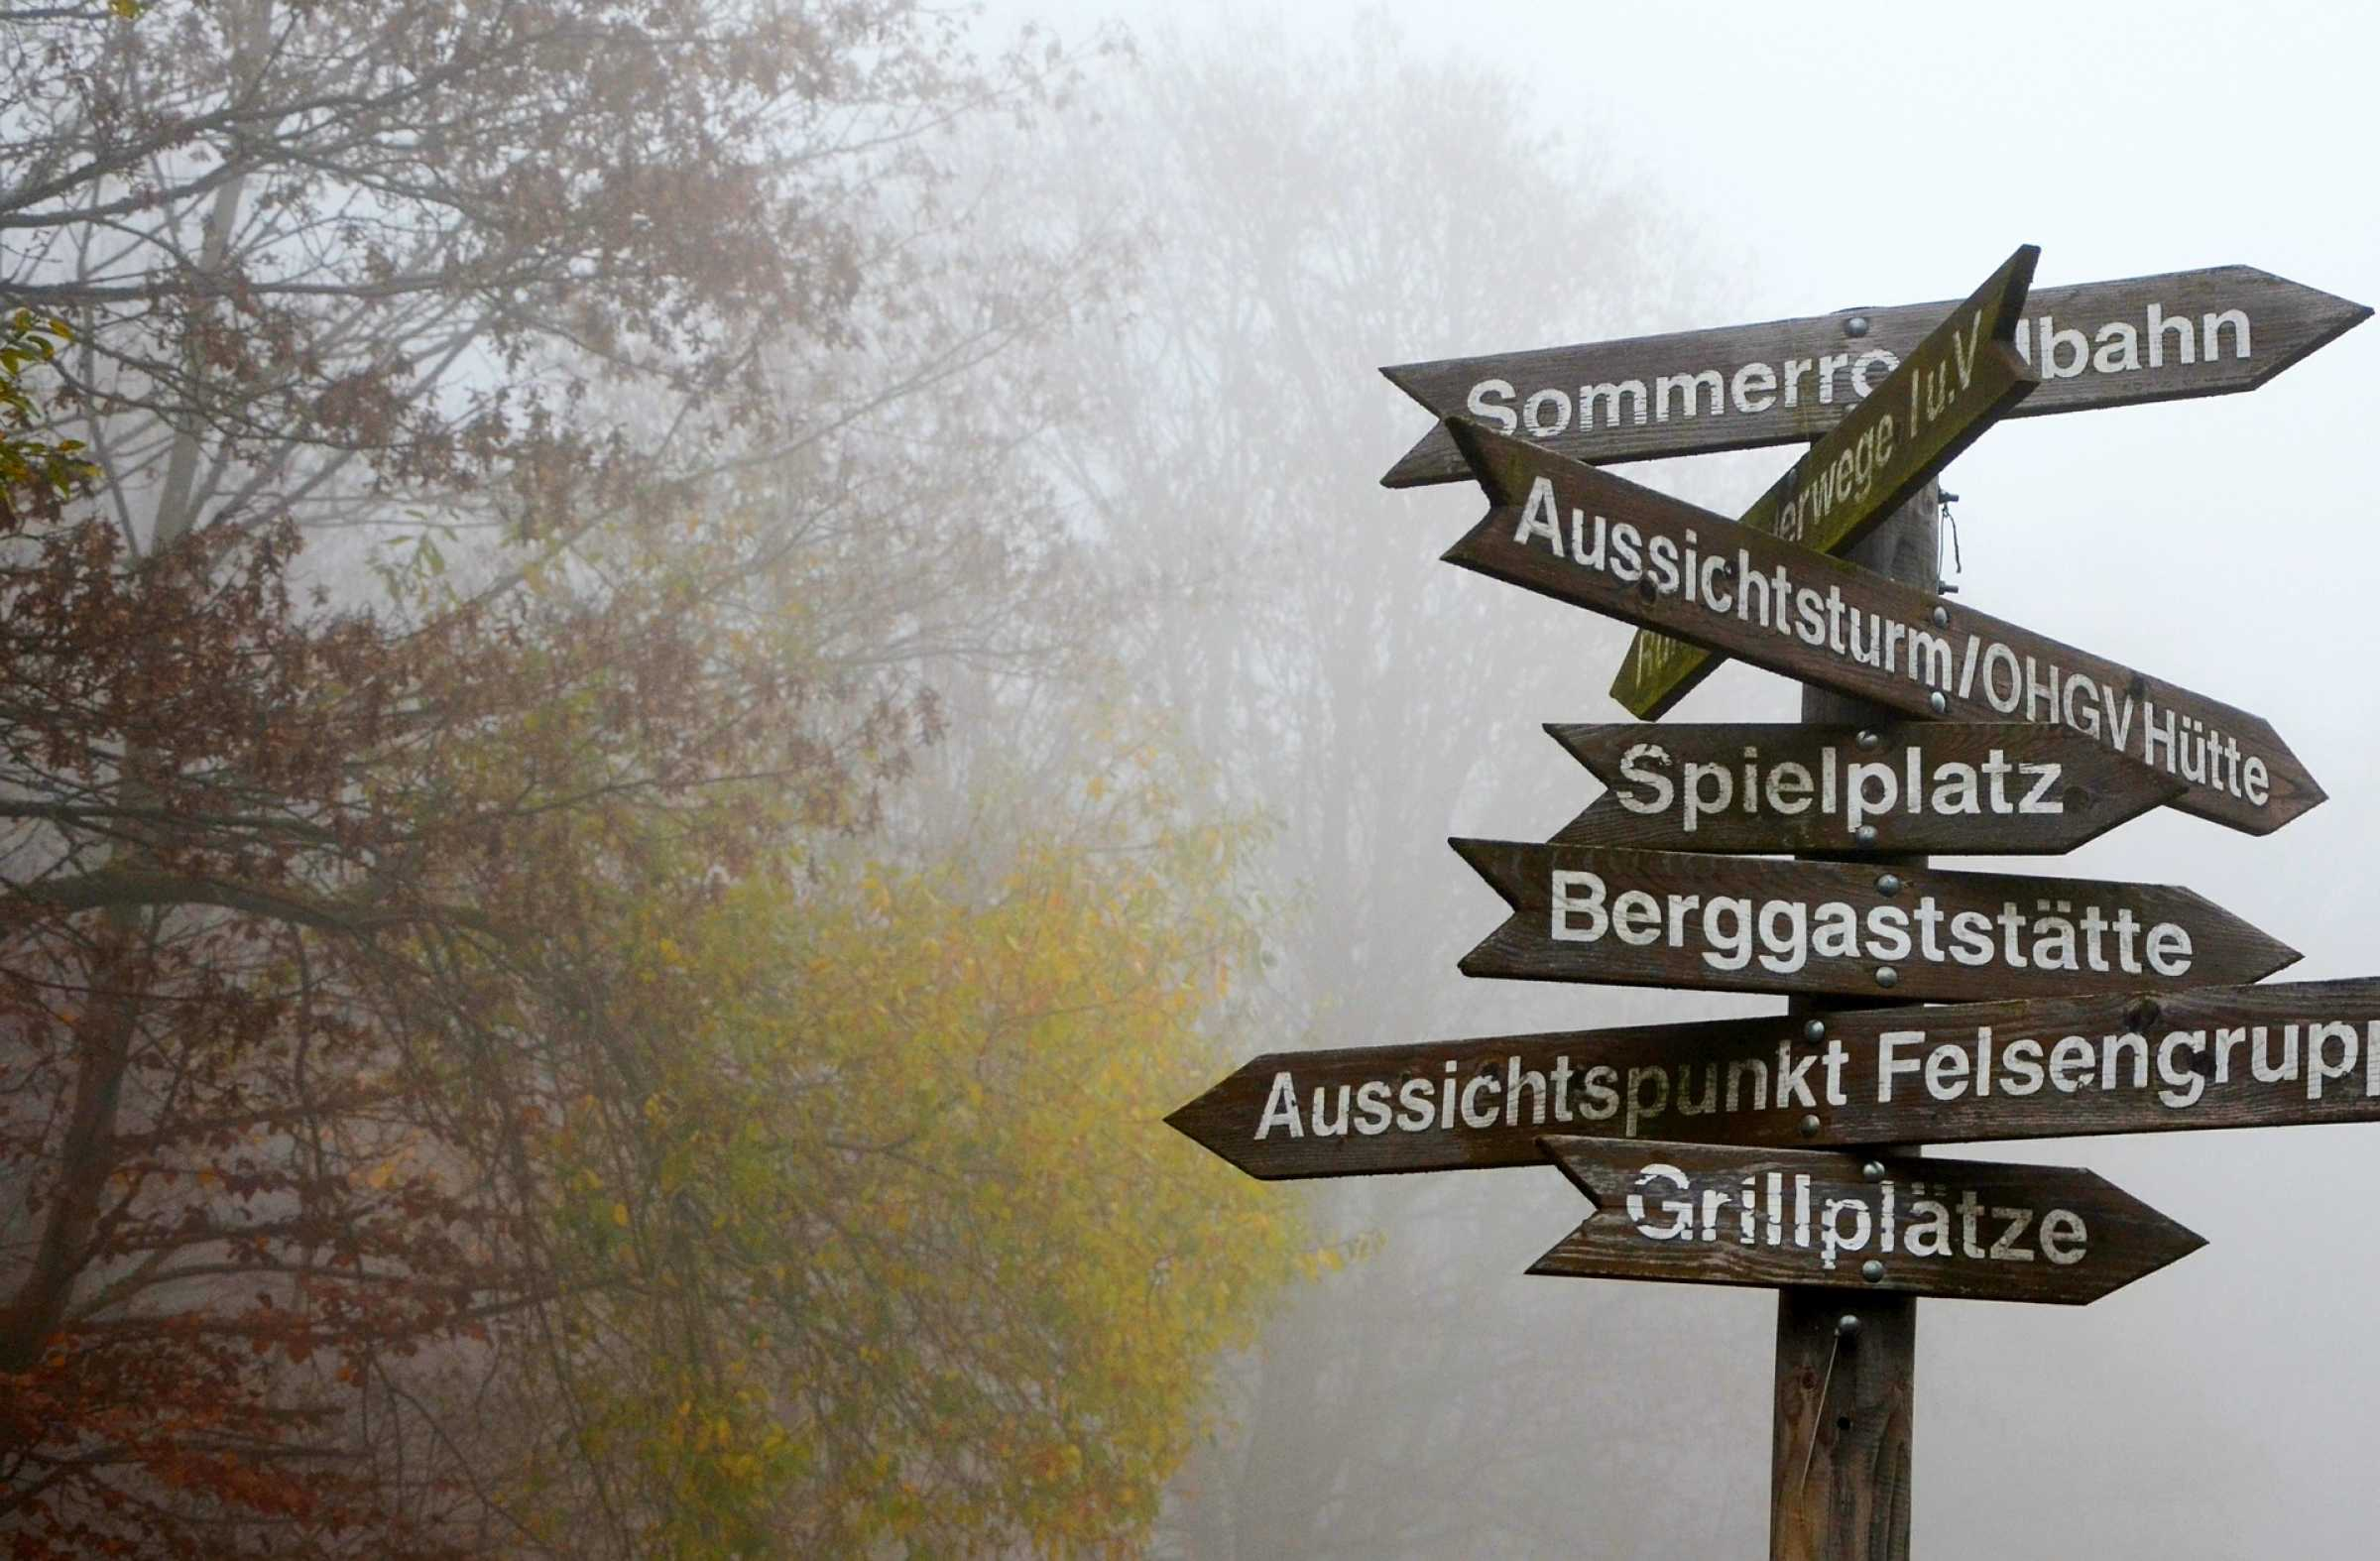 Signposts in the mist